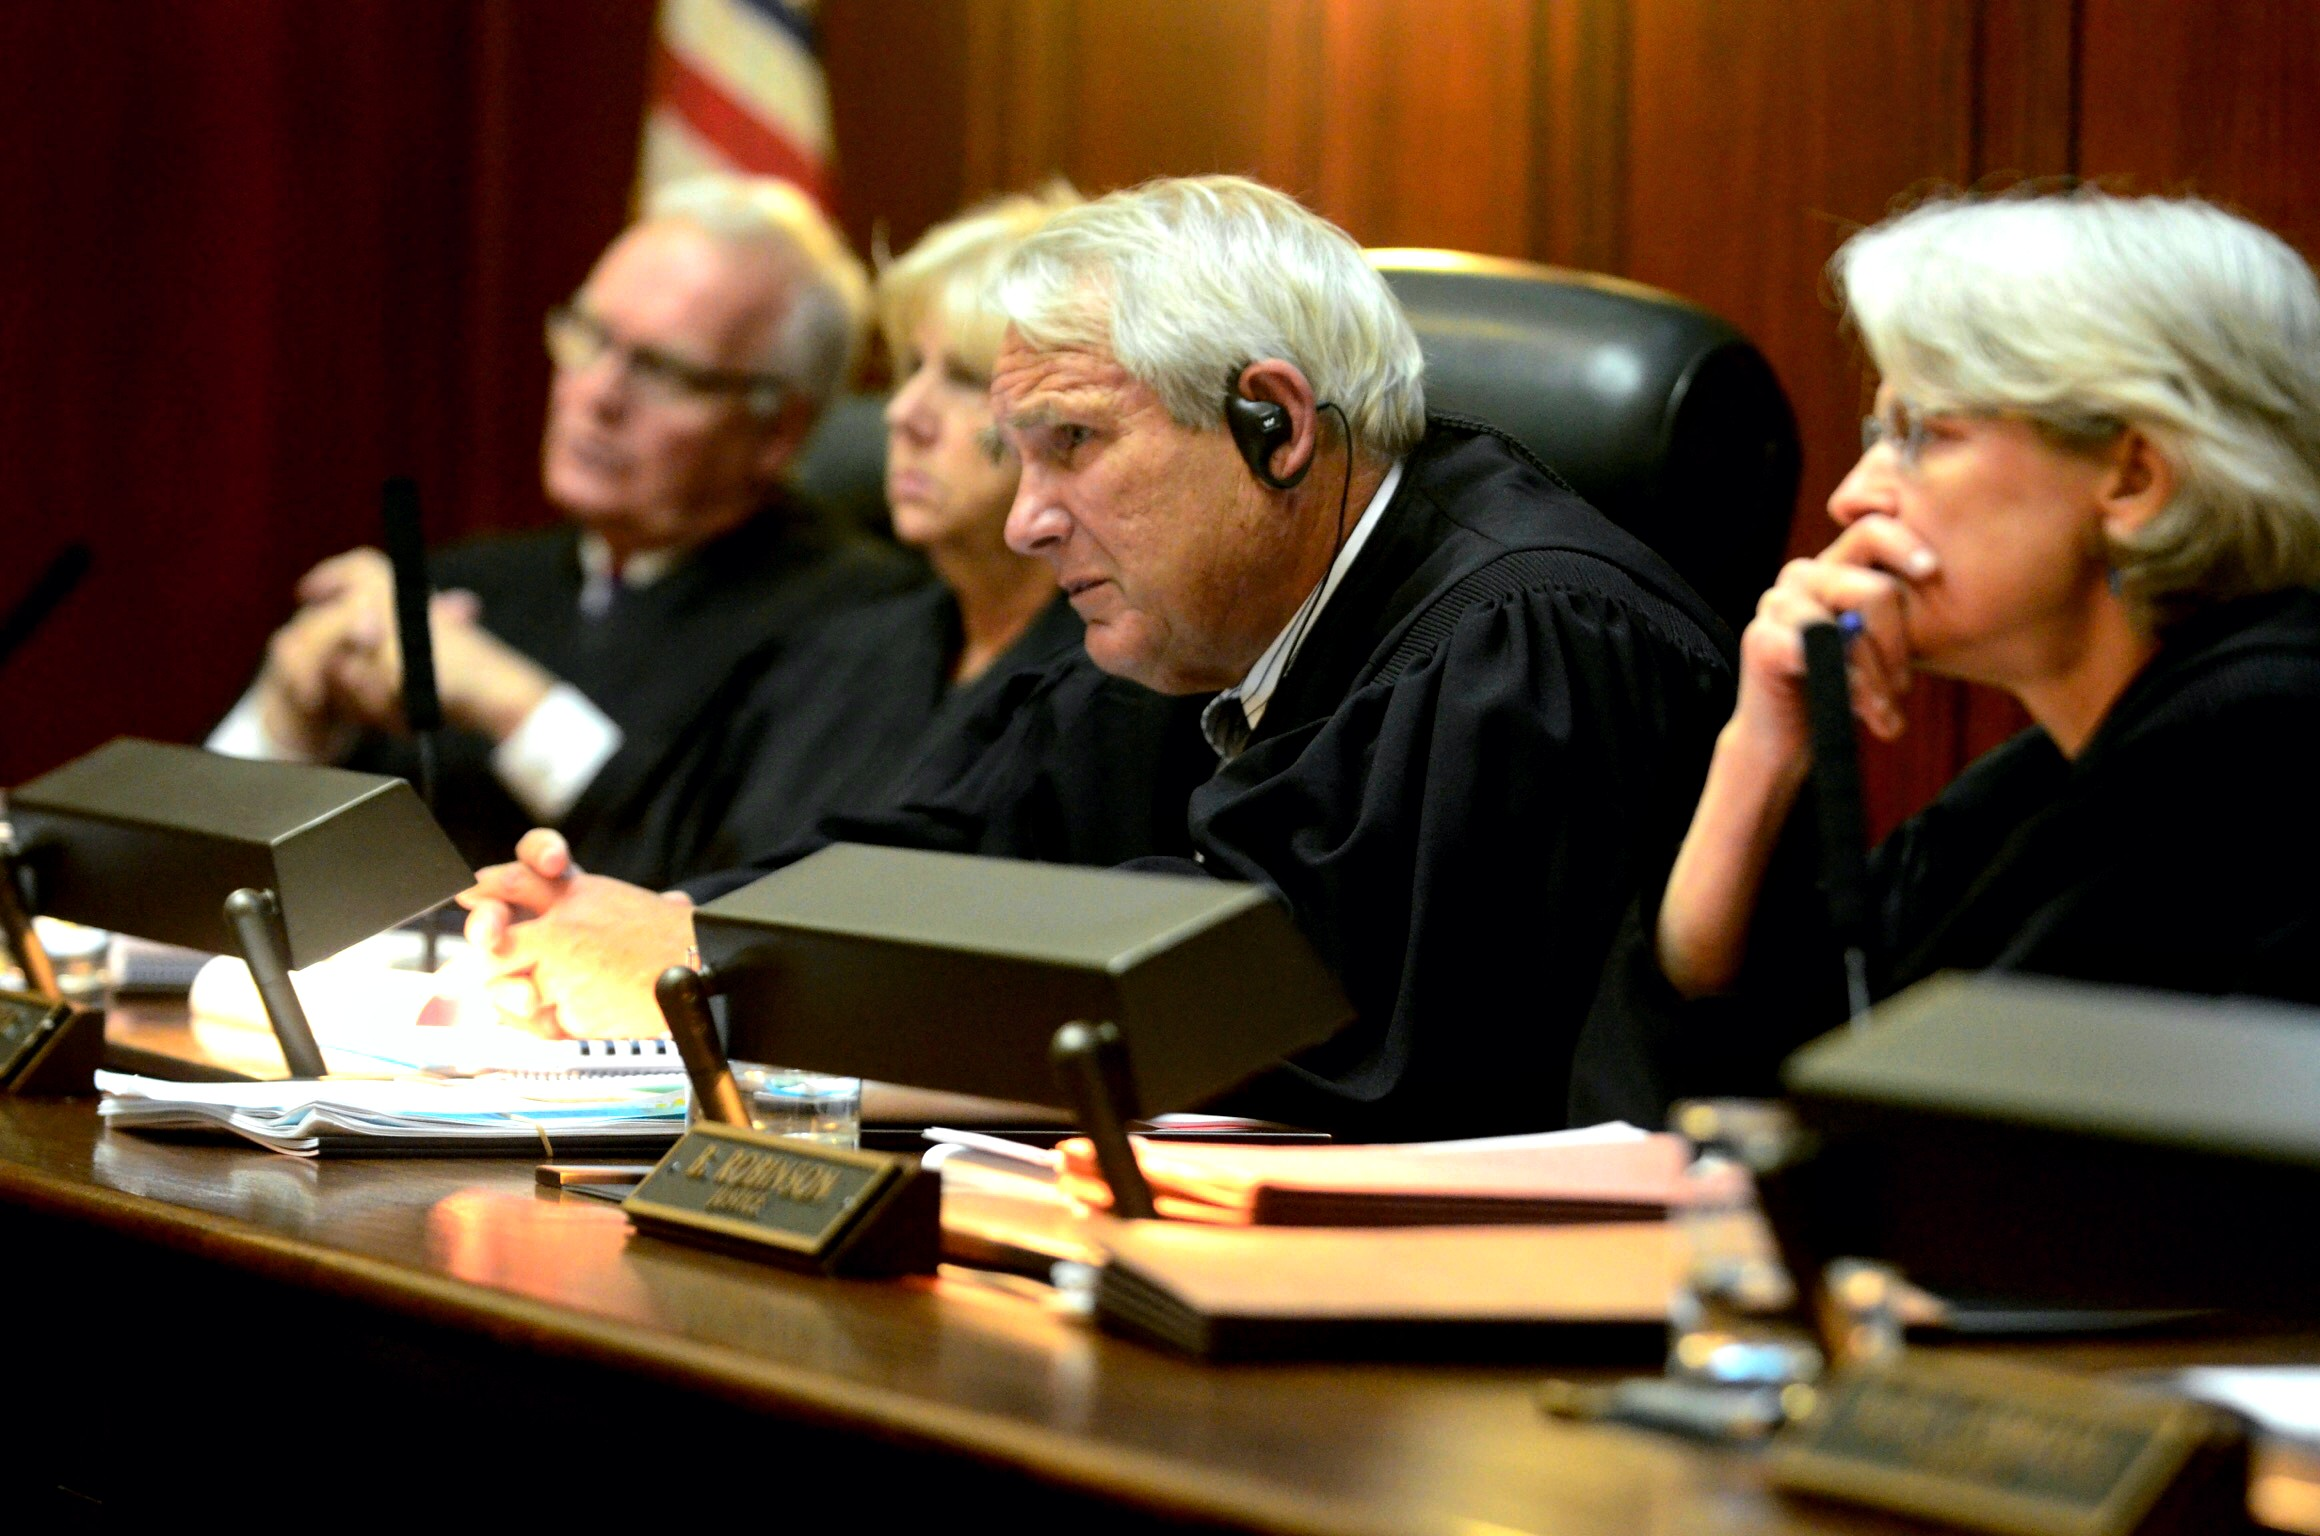 Attorneys cry foul on AG Donovan barring photos during record inspections - VTDigger